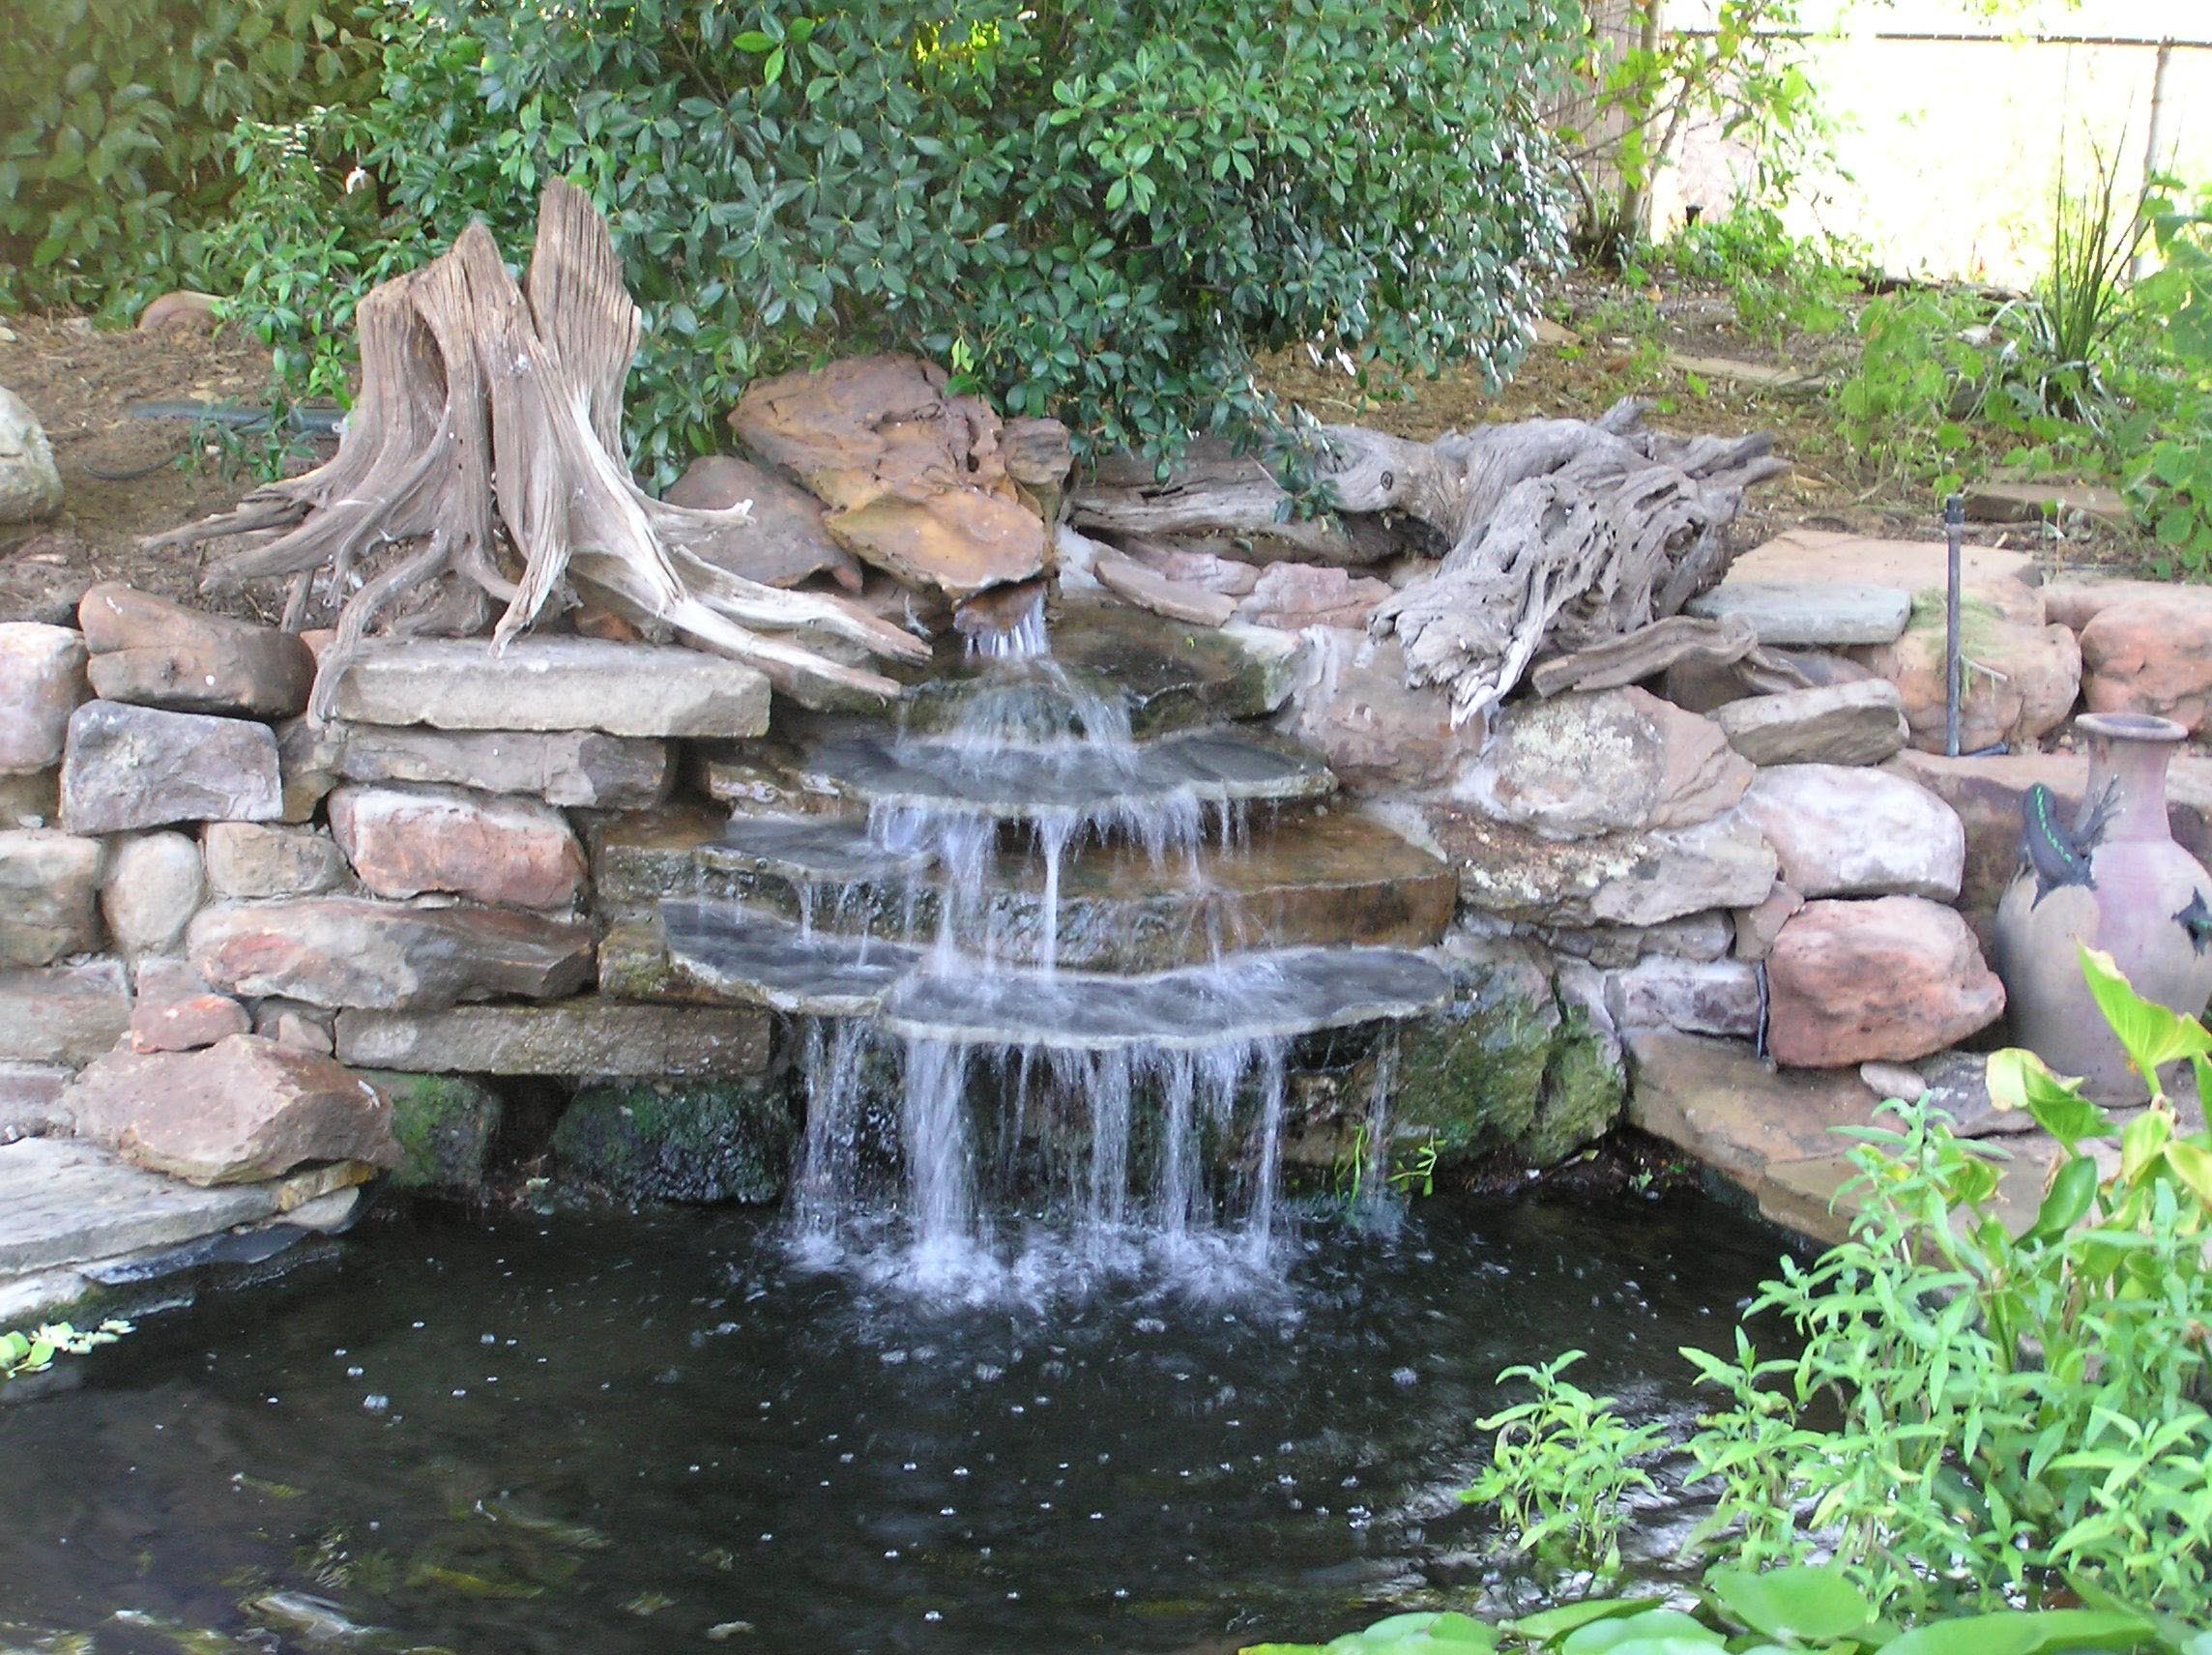 Backyard Waterfalls Ideas 15 waterfall designs Pics Photos Backyard Waterfall Design Waterfall Design Ideas Range